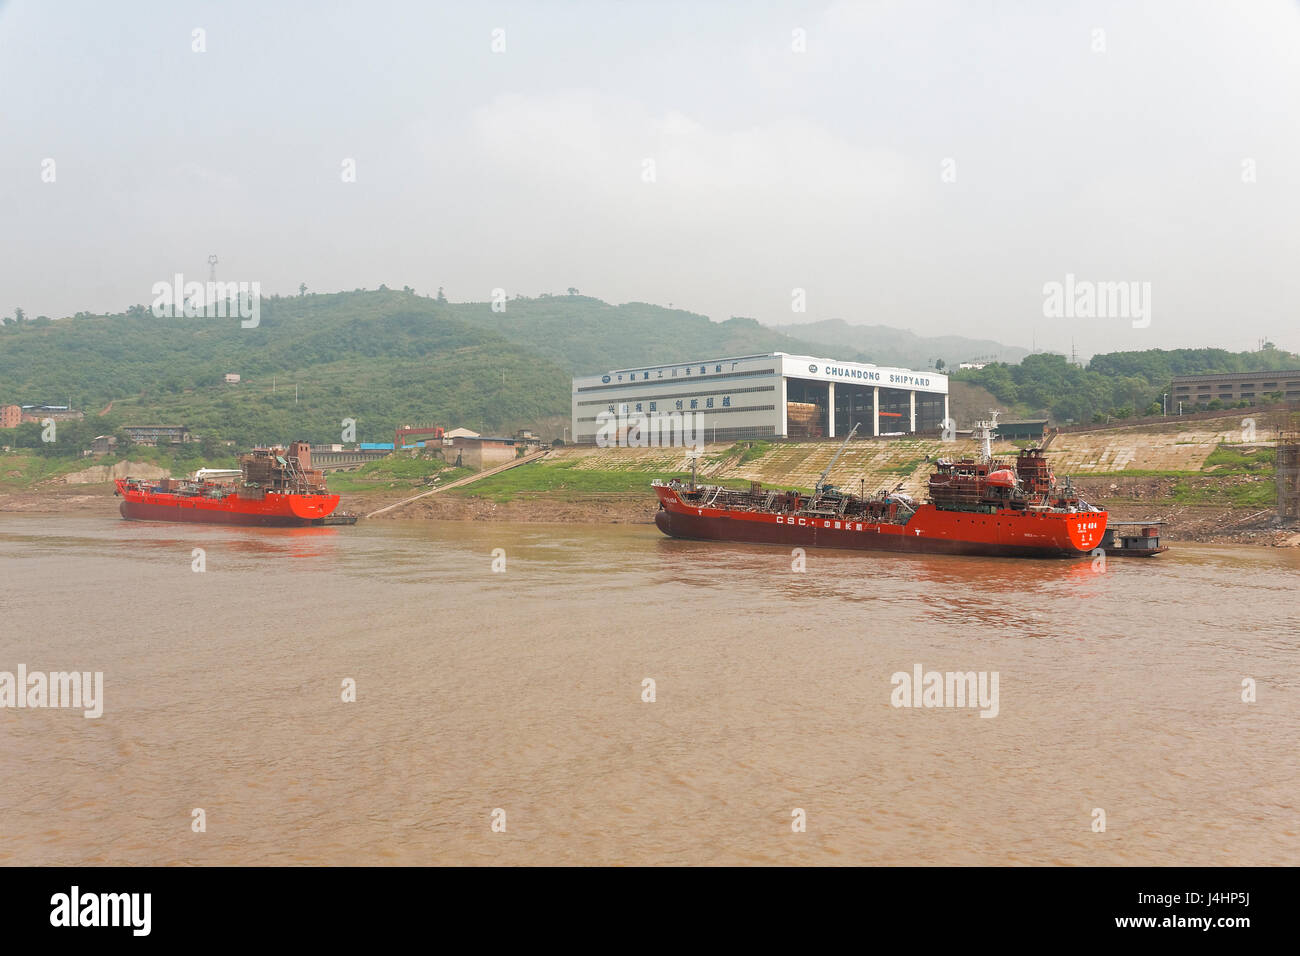 On the banks of the Yangtze River, near Fuling, there is a shipyard with a large shed, slipway and two new ships - Stock Image